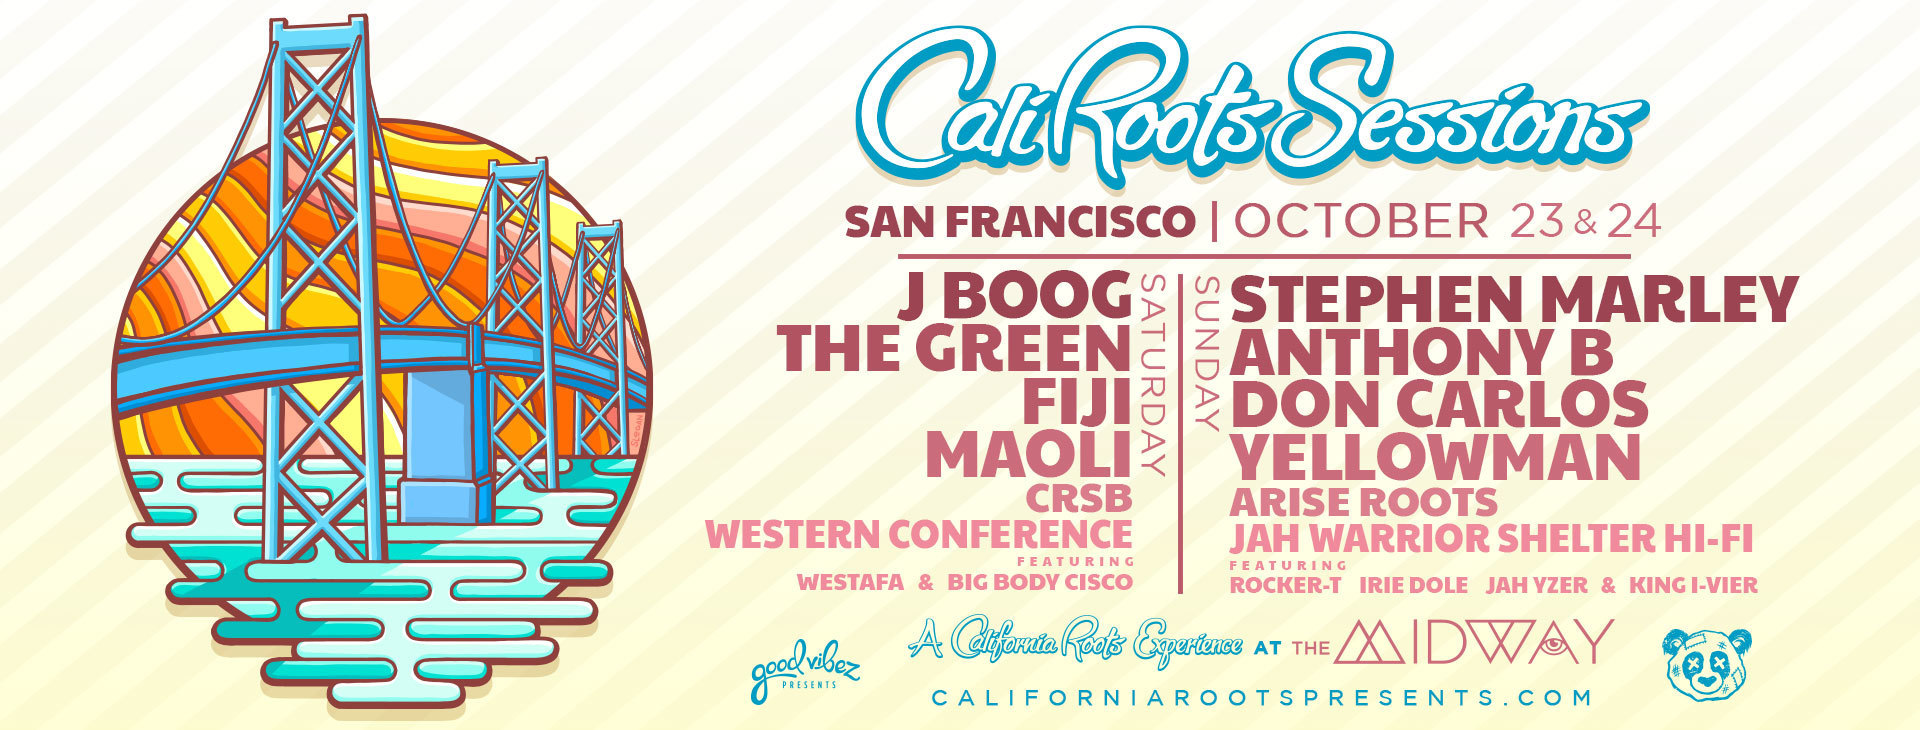 Cali Roots SF Sessions